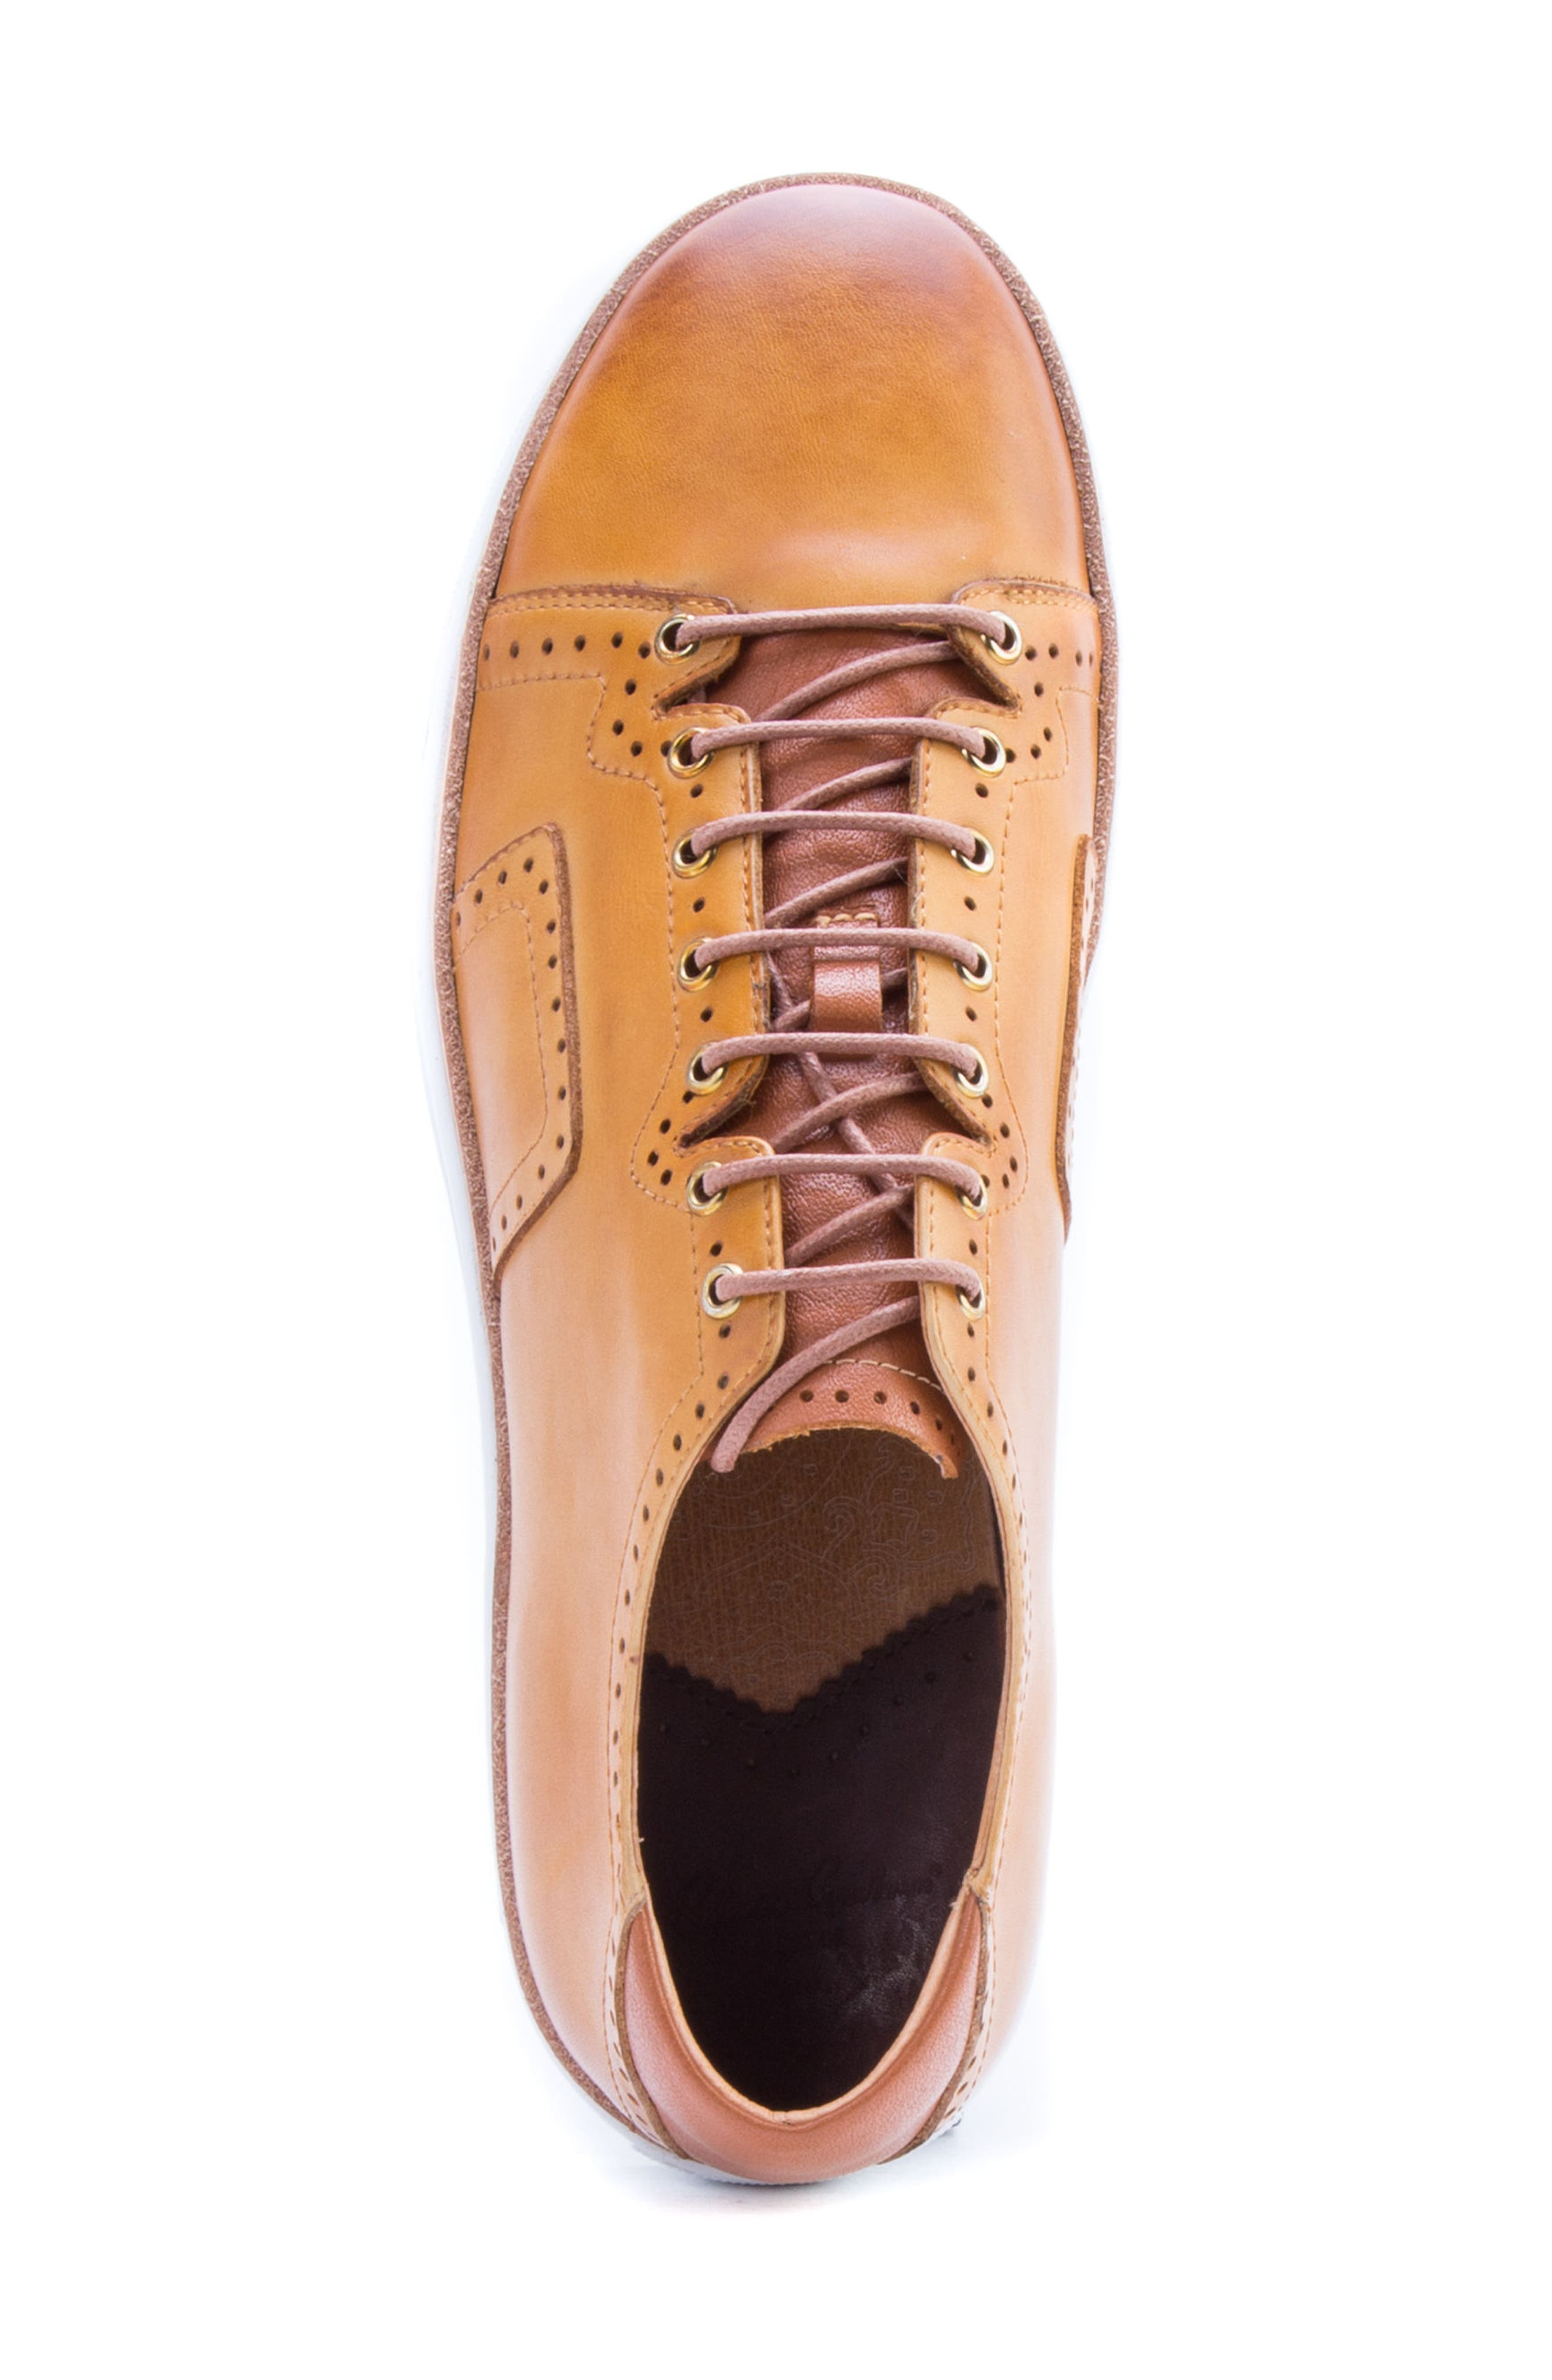 Marti Low Top Sneaker,                             Alternate thumbnail 5, color,                             Cognac Leather